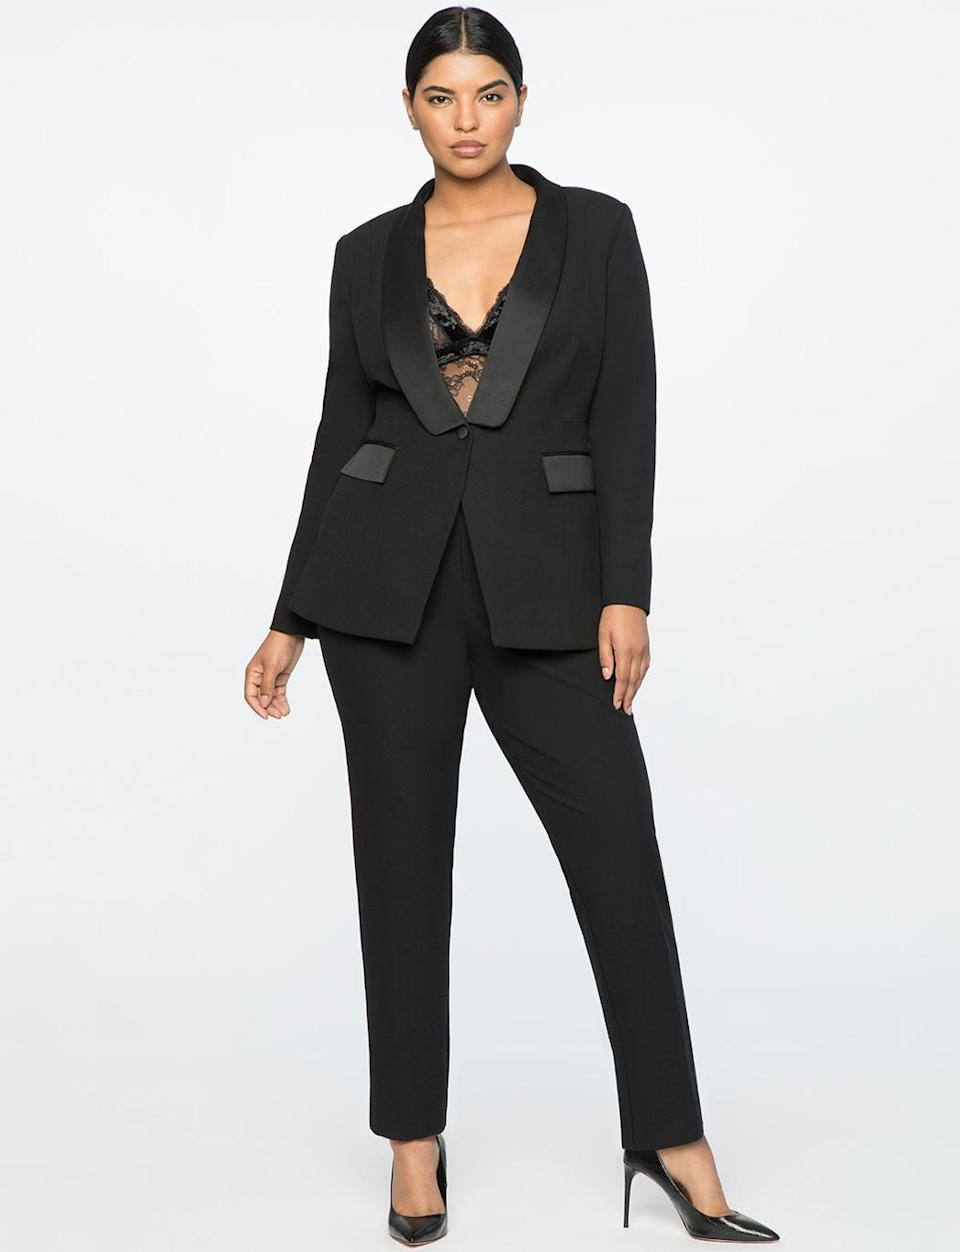 """<p>This tux is the power suit of all of your dreams. Channel<a rel=""""nofollow"""" href=""""https://www.yahoo.com/lifestyle/blake-lively-kanye-west-30-145600553/photo-p-last-night-york-citys-photo-145804003.html"""" data-ylk=""""slk:Blake Lively;outcm:mb_qualified_link;_E:mb_qualified_link;ct:story;"""" class=""""link rapid-noclick-resp yahoo-link""""> Blake Lively</a> and <a rel=""""nofollow"""" href=""""https://www.yahoo.com/lifestyle/led-by-evan-rachel-wood-pantsuit-nation-takes-the-globes-020546210.html"""" data-ylk=""""slk:Evan Rachel Wood;outcm:mb_qualified_link;_E:mb_qualified_link;ct:story;"""" class=""""link rapid-noclick-resp yahoo-link"""">Evan Rachel Wood</a> on the red carpet with this luxe outift. Wear a bralette undenreath the blazer for a sexier look. <br>Jason Wu x Eloquii tux blazer, $120,<a rel=""""nofollow noopener"""" href=""""https://fave.co/2OiRuJr"""" target=""""_blank"""" data-ylk=""""slk:eloquii.com"""" class=""""link rapid-noclick-resp""""> eloquii.com</a><br>Jason Wu x Eloquii tux pants, $90,<a rel=""""nofollow noopener"""" href=""""https://fave.co/2qmCDEv"""" target=""""_blank"""" data-ylk=""""slk:eloquii.com"""" class=""""link rapid-noclick-resp""""> eloquii.com</a> </p>"""